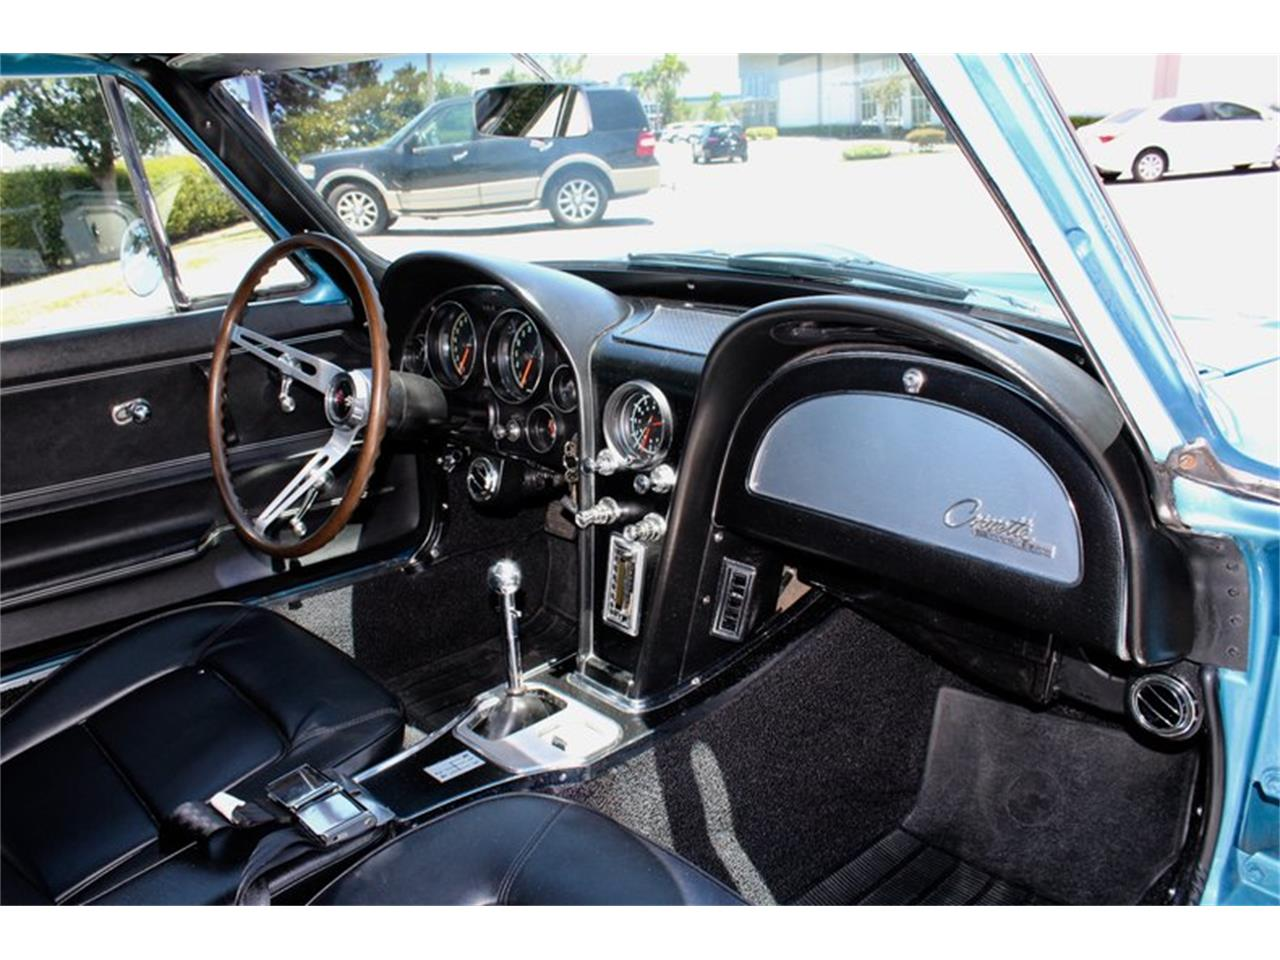 Large Picture of 1965 Chevrolet Corvette located in Florida - $69,500.00 Offered by Classic Cars of Sarasota - QSRR